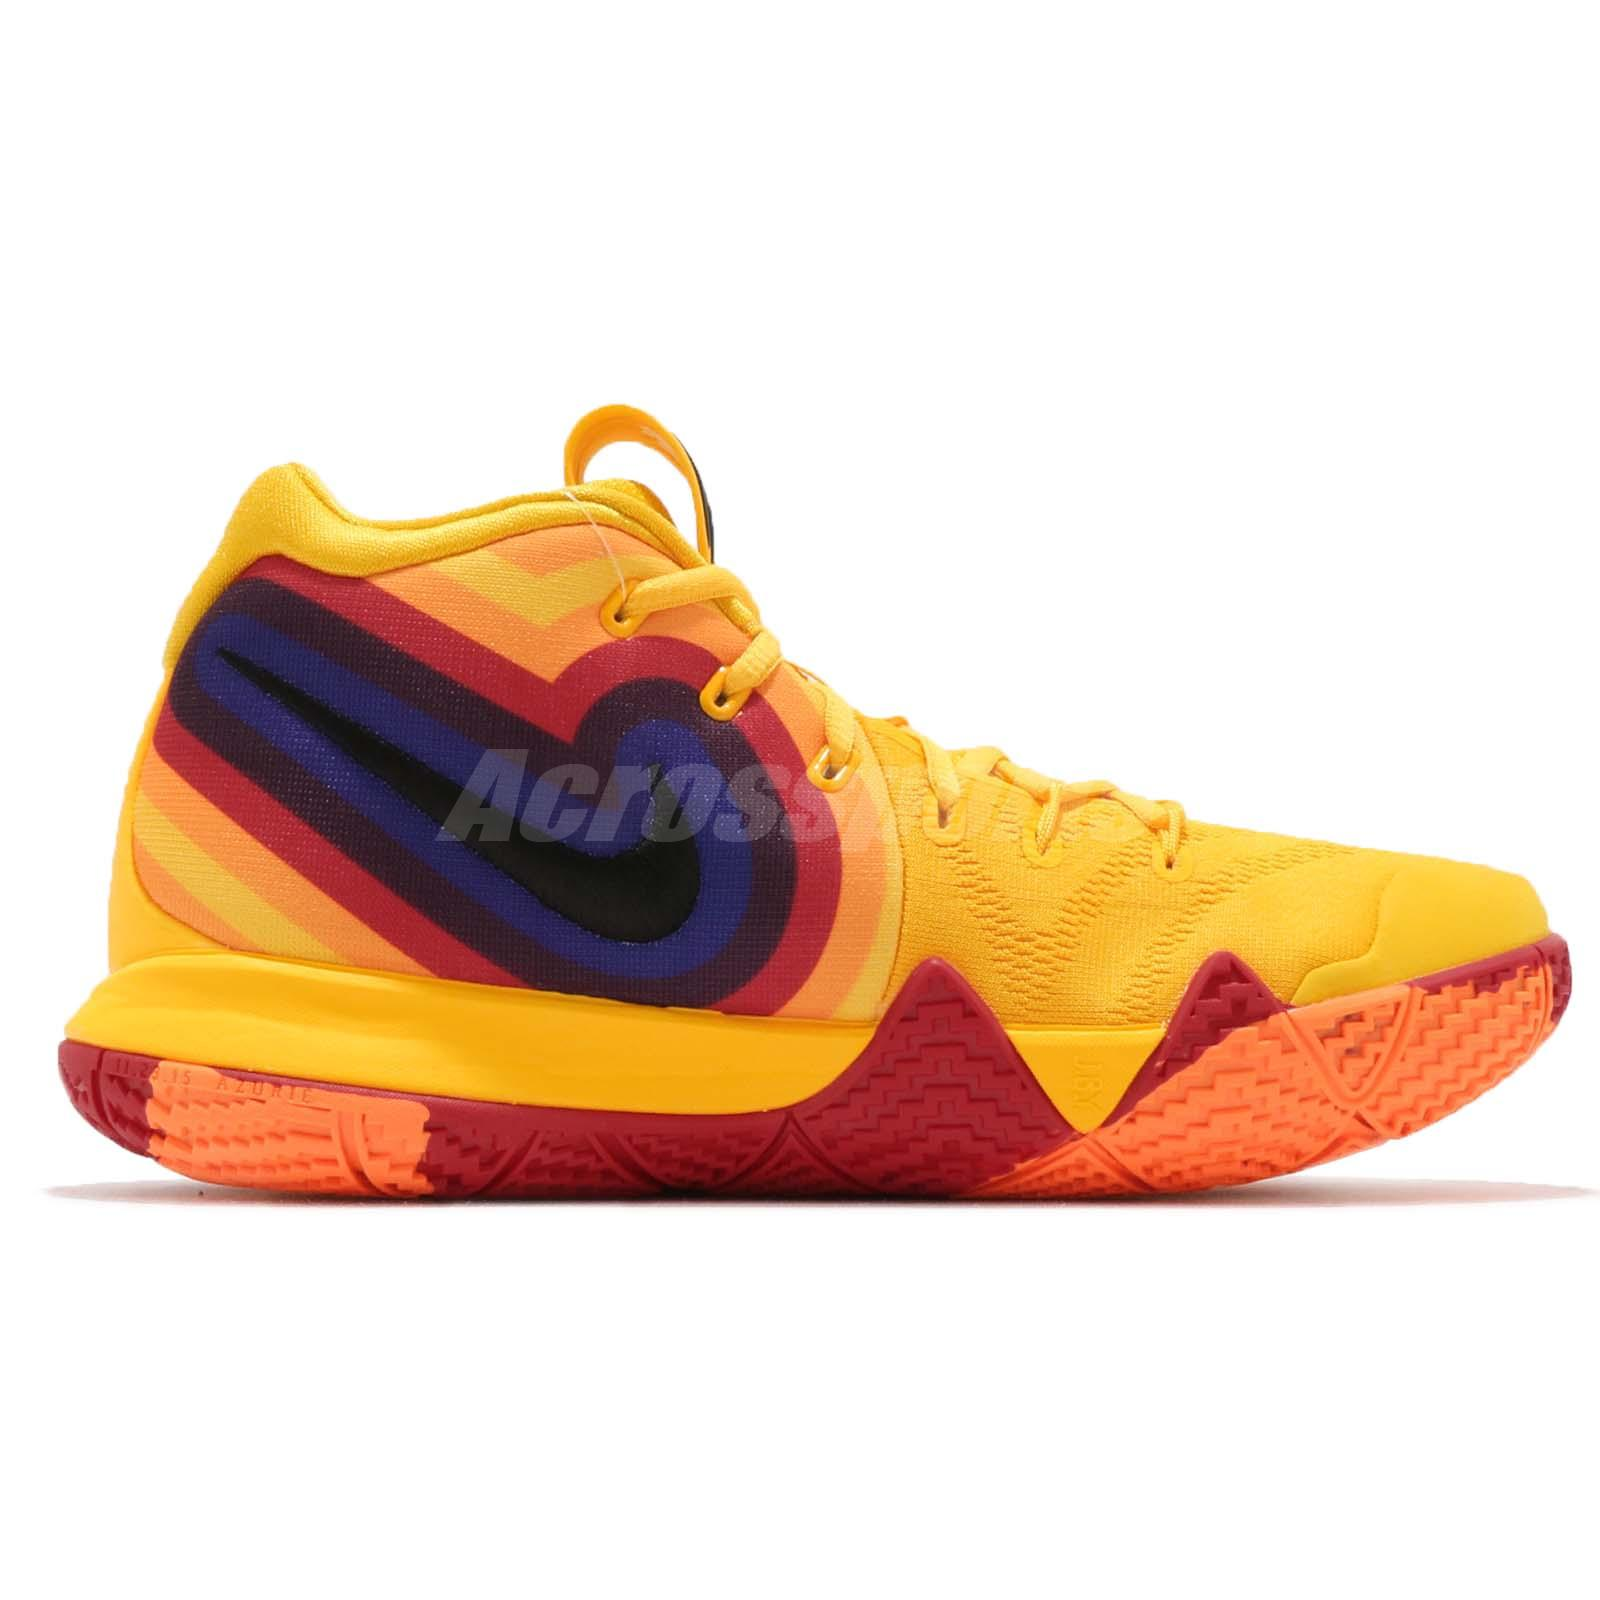 44e4186ada8 Nike Kyrie 4 EP 70s Uncle Drew Decades Pack Yellow Basketball Shoes ...